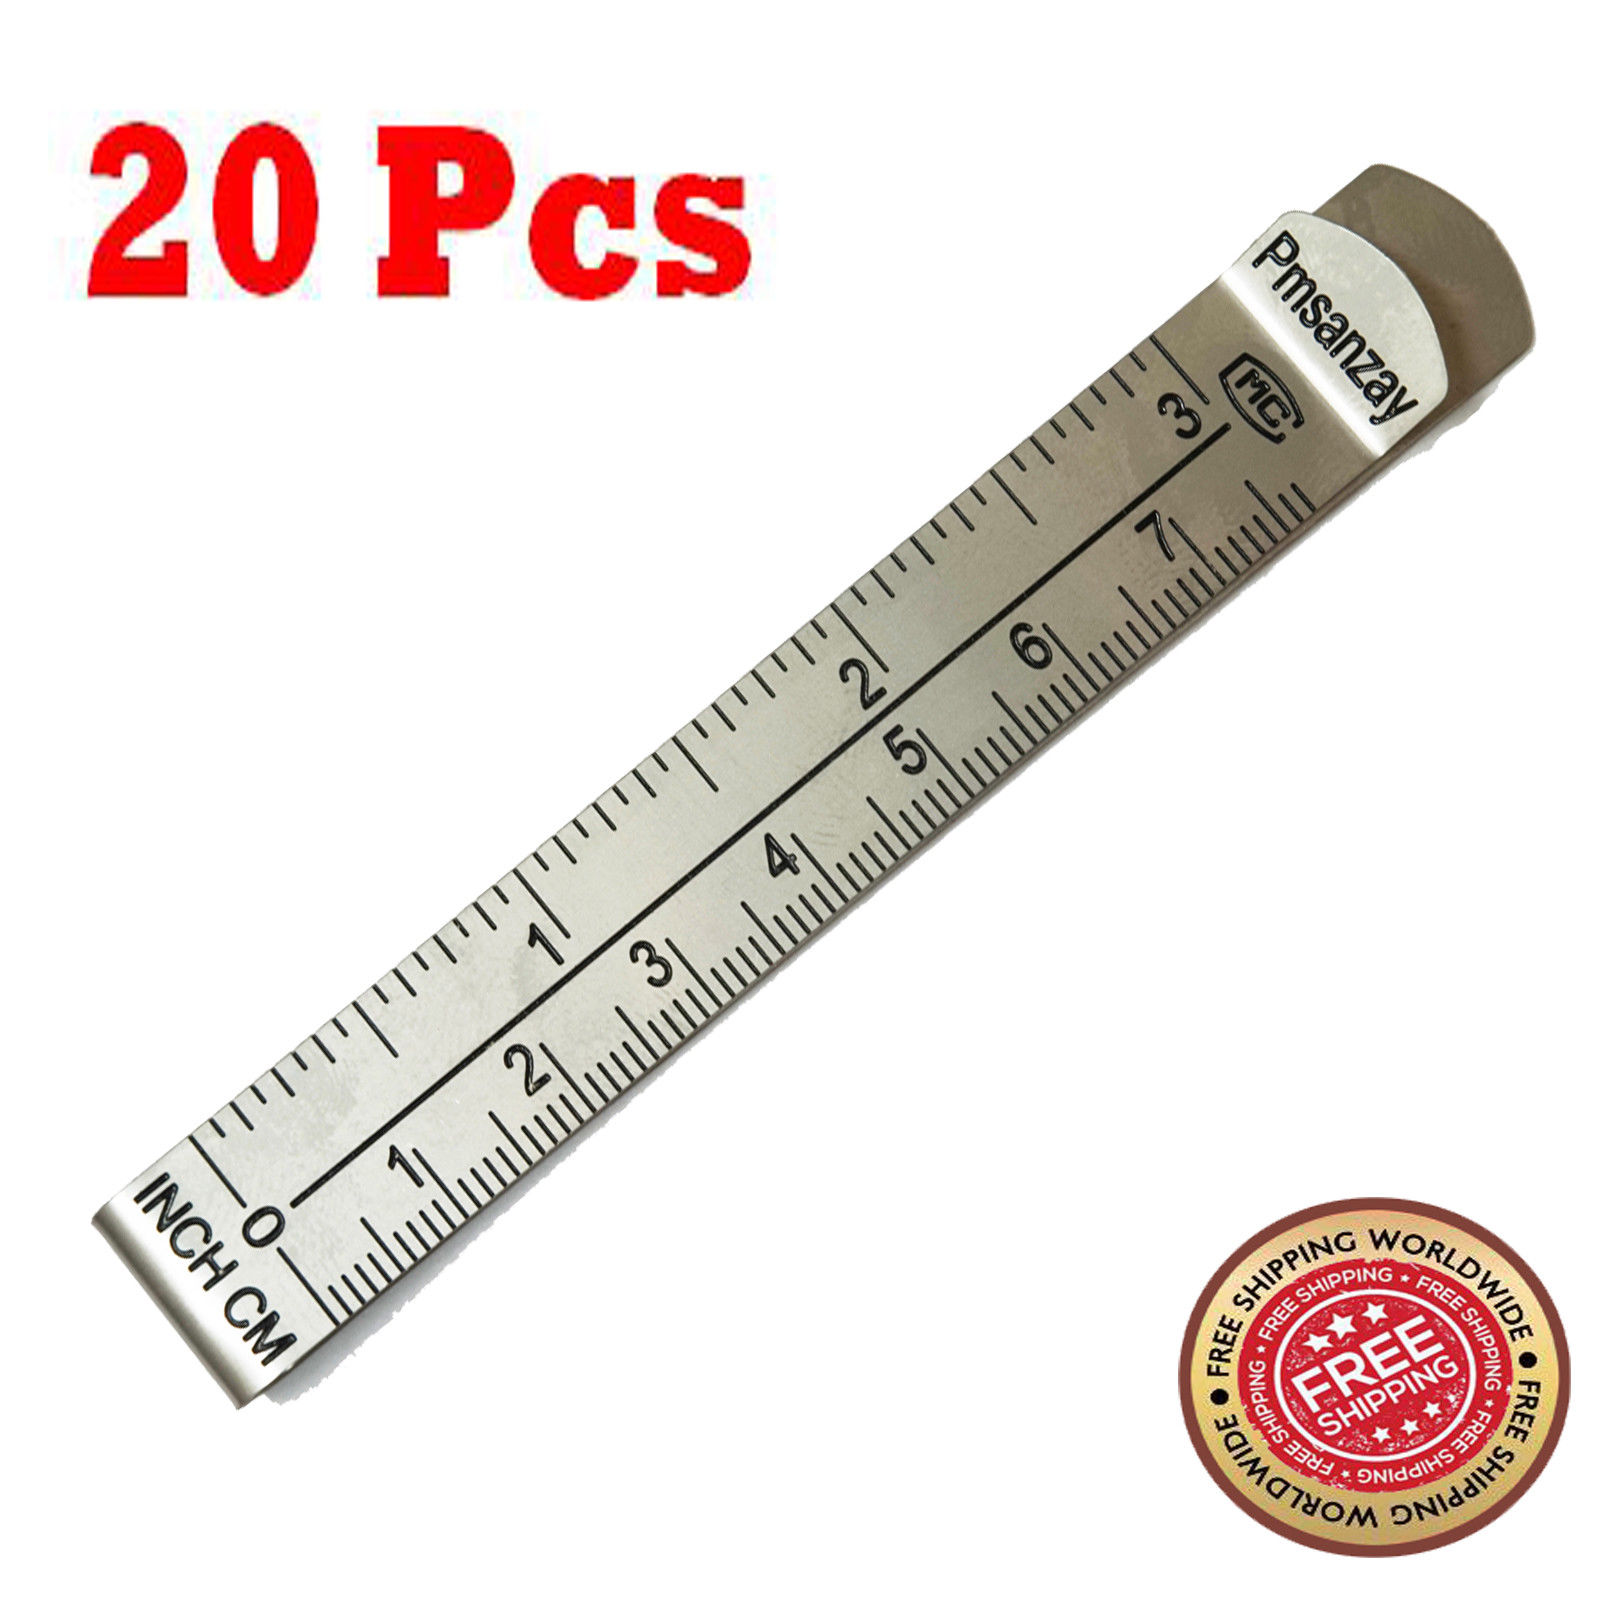 Hemming Clips 3 Inches Measurement Ruler Pinning Marking Sewing Wonder Clips Set